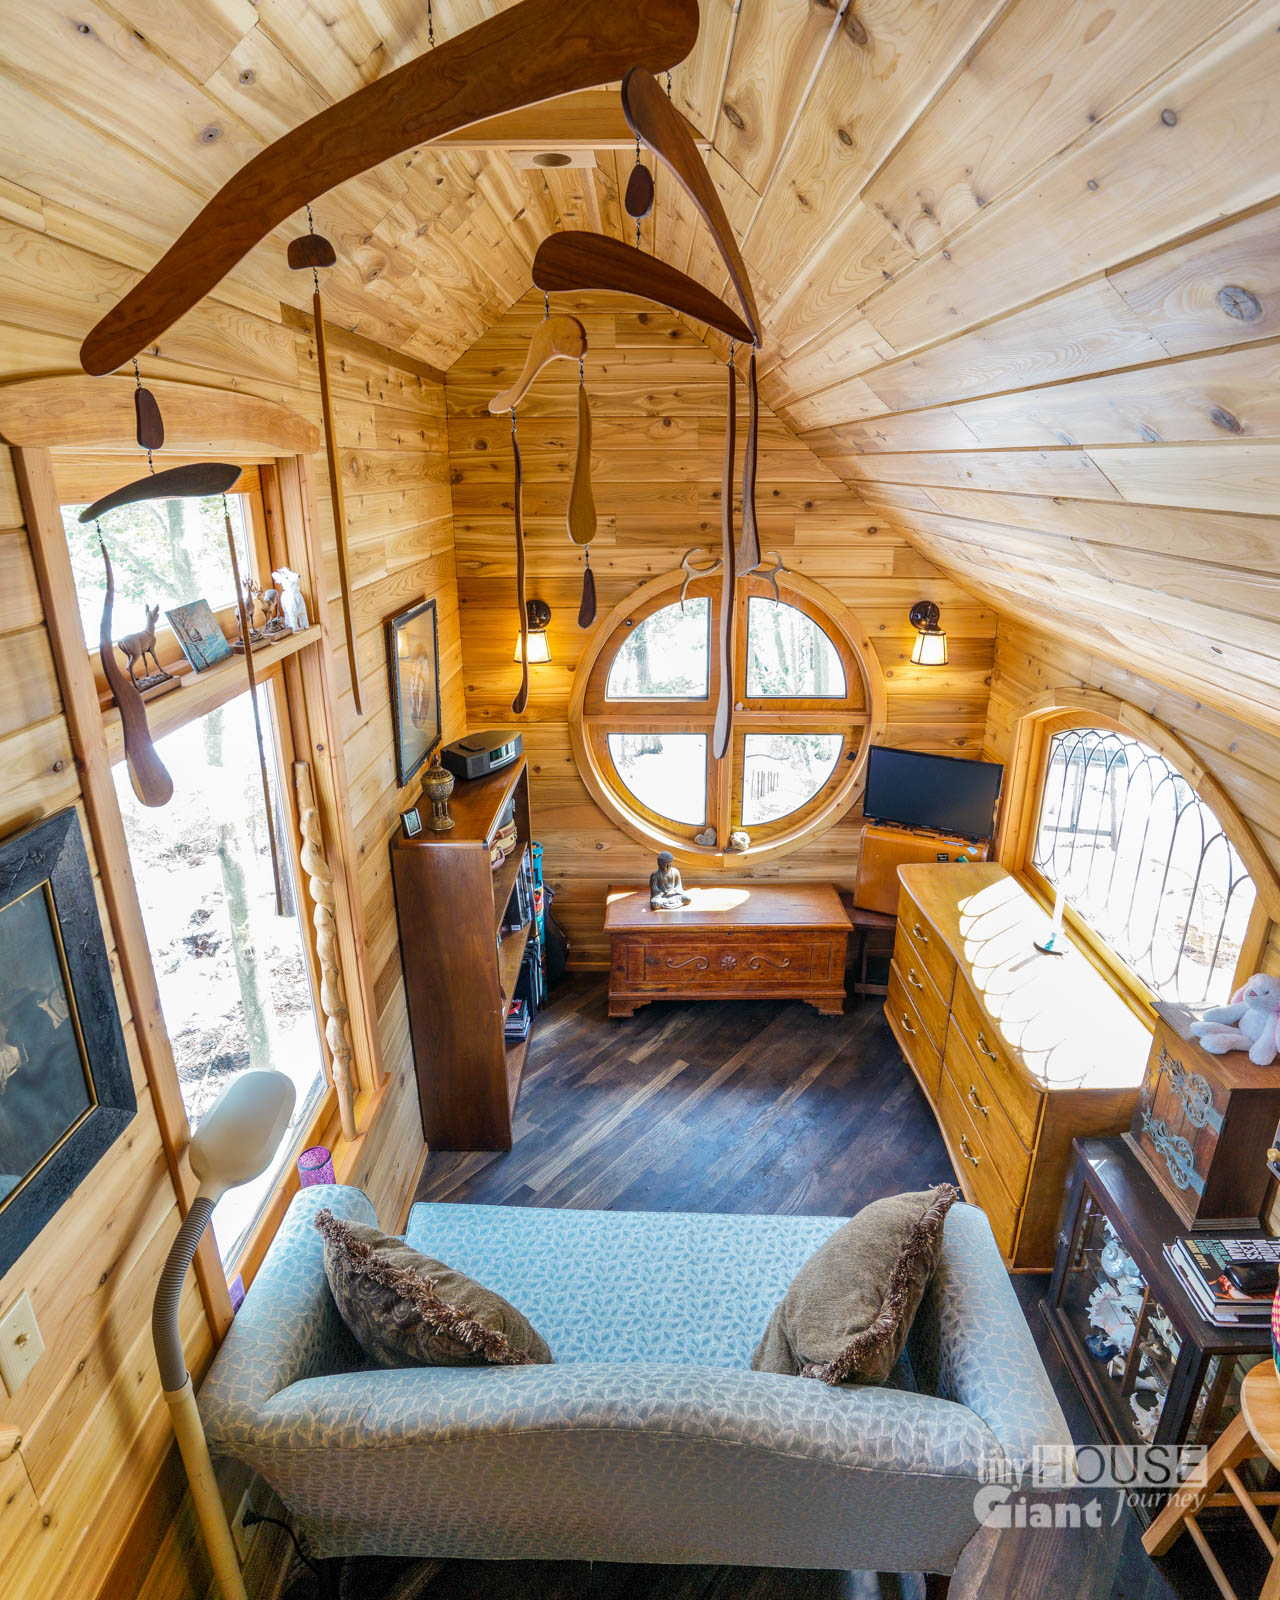 The pinafore tiny house 0010 tiny house giant journey for Small house zen design